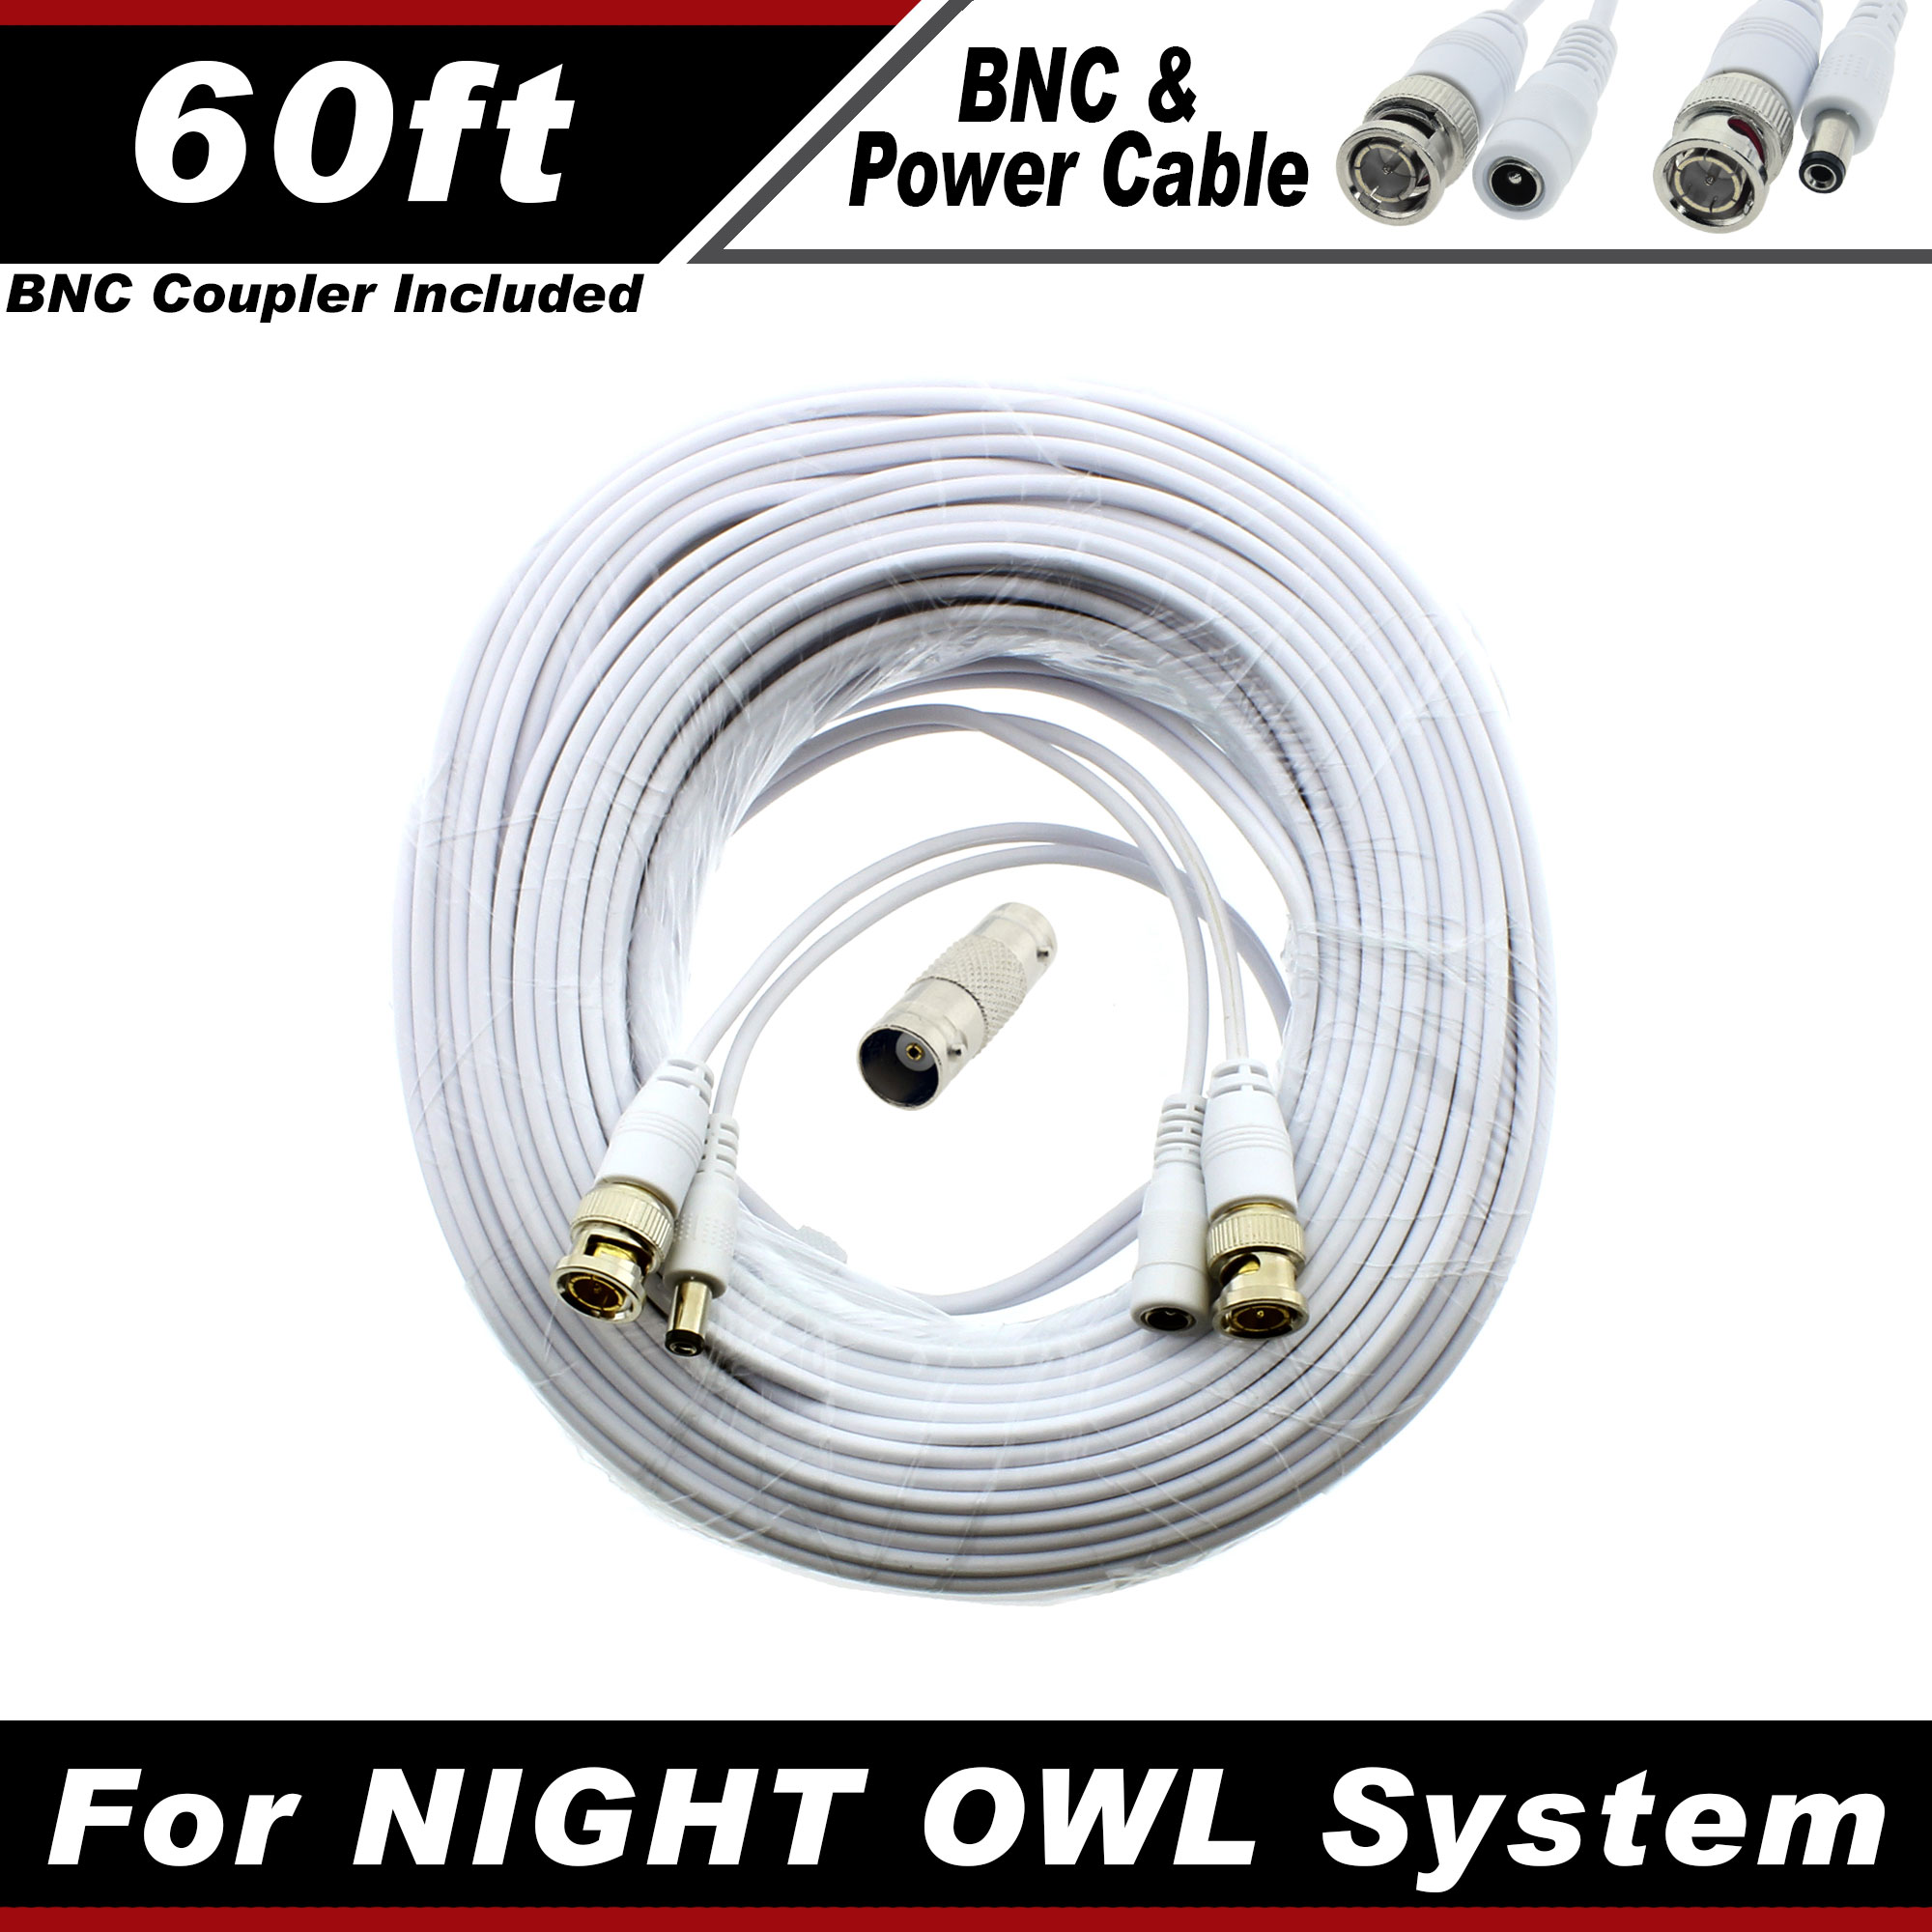 PREMIUM 60Ft HIGH QUALITY THICK BNC EXTENSION CABLES FOR WISENET SYSTEMS WITHE